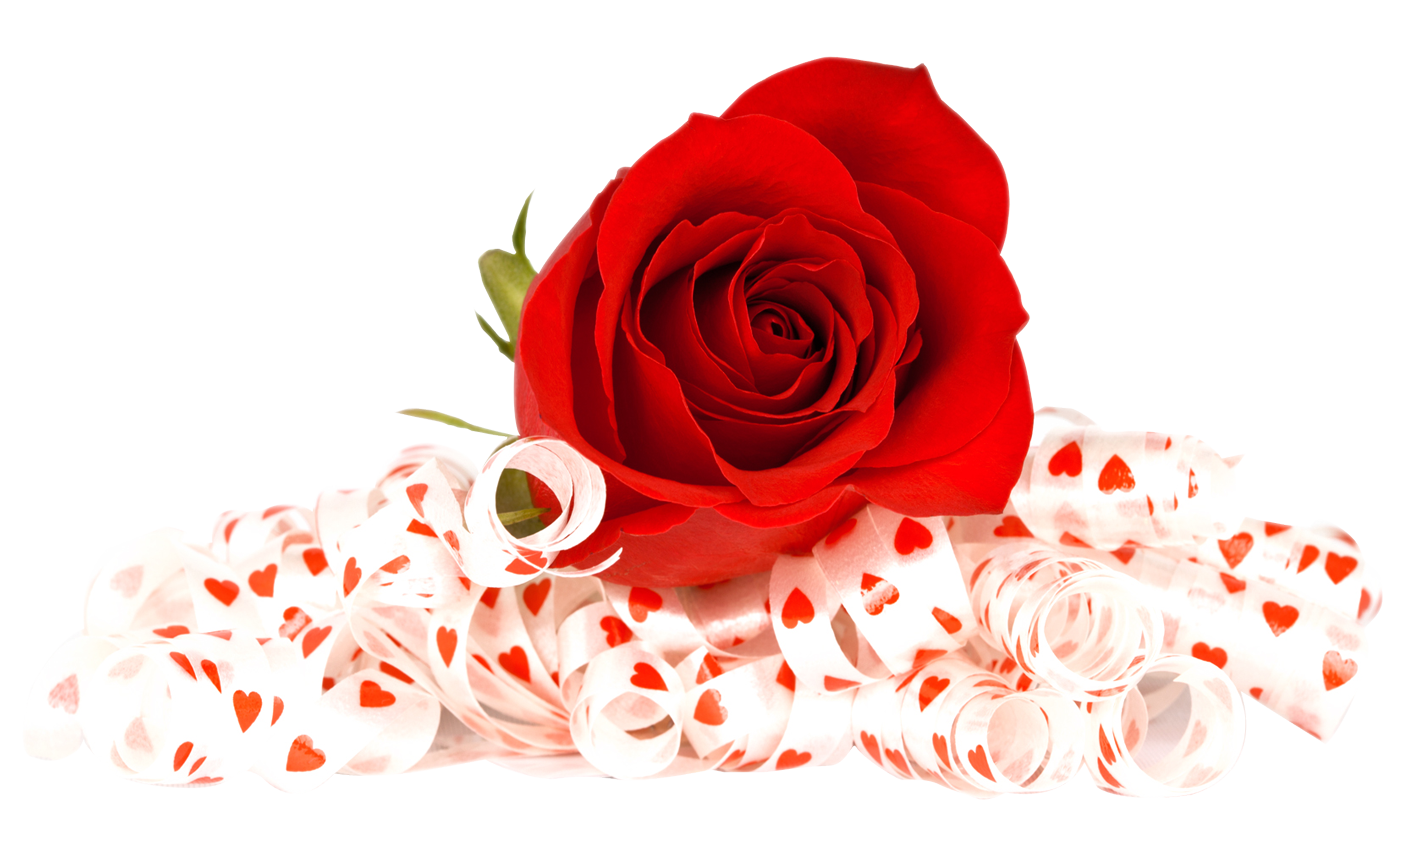 Rose Flowers Cut Out Background 16251